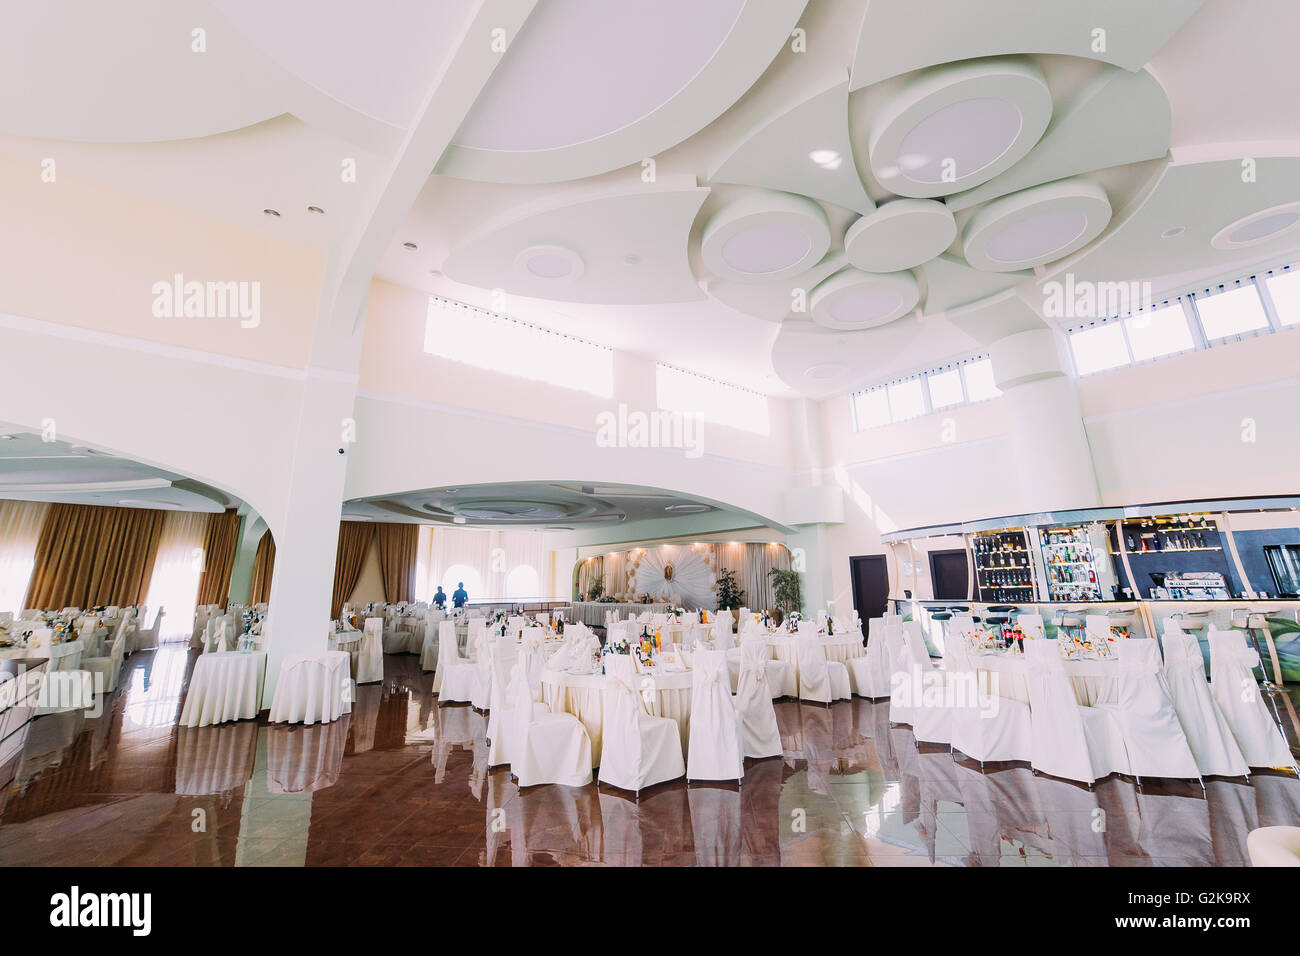 Banquet Hall With Fancy Ceiling Set For Wedding Or Another Formal Event